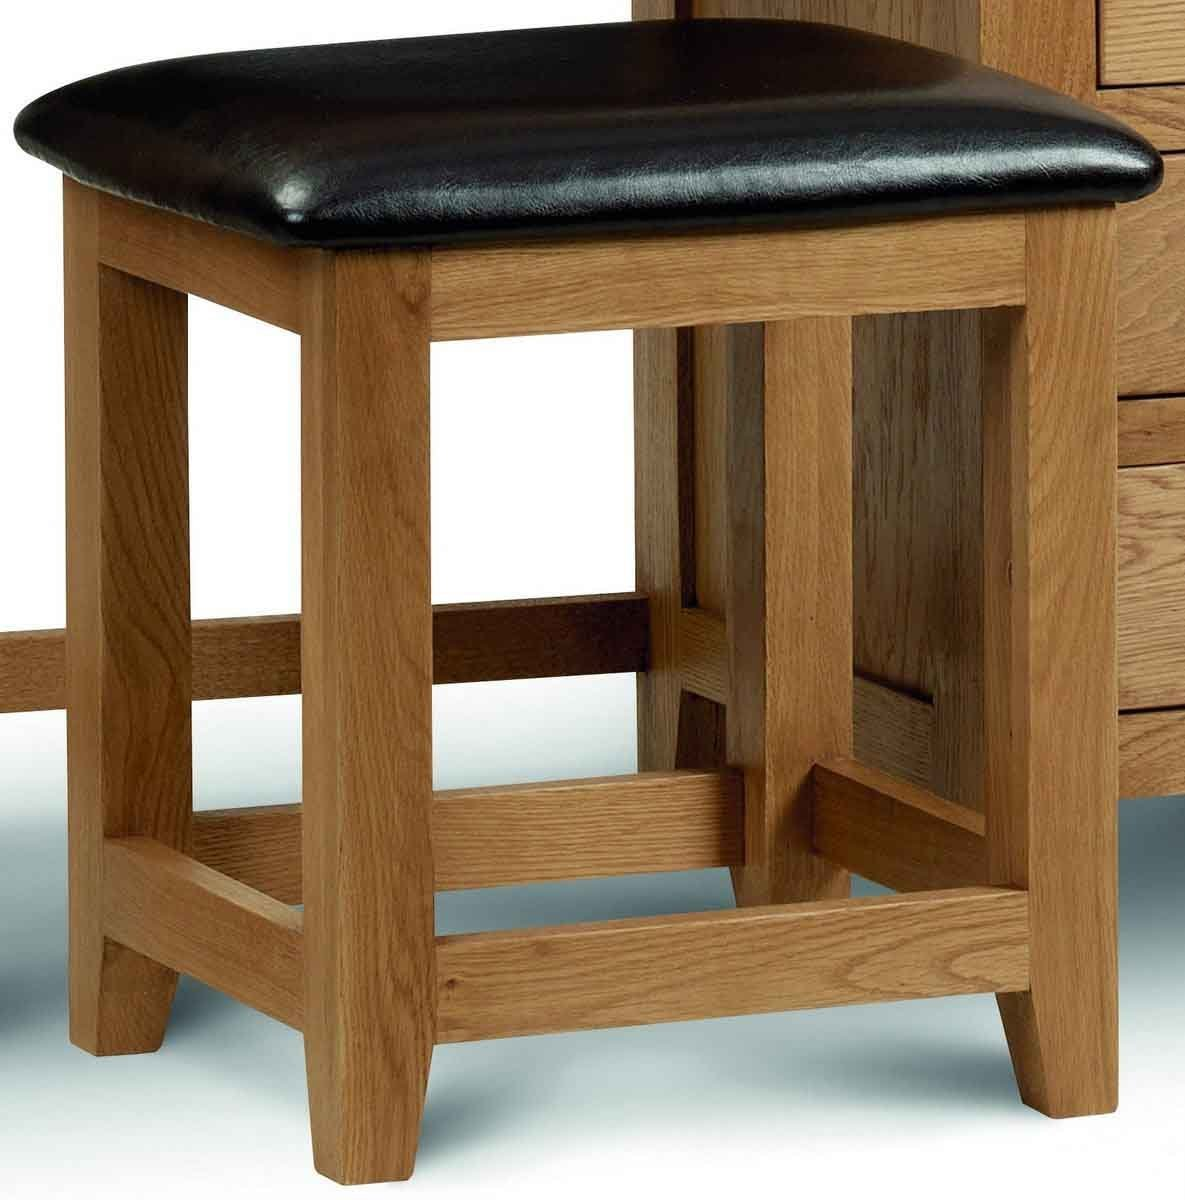 Photo of Julian bowen marlborough oak dressing stool